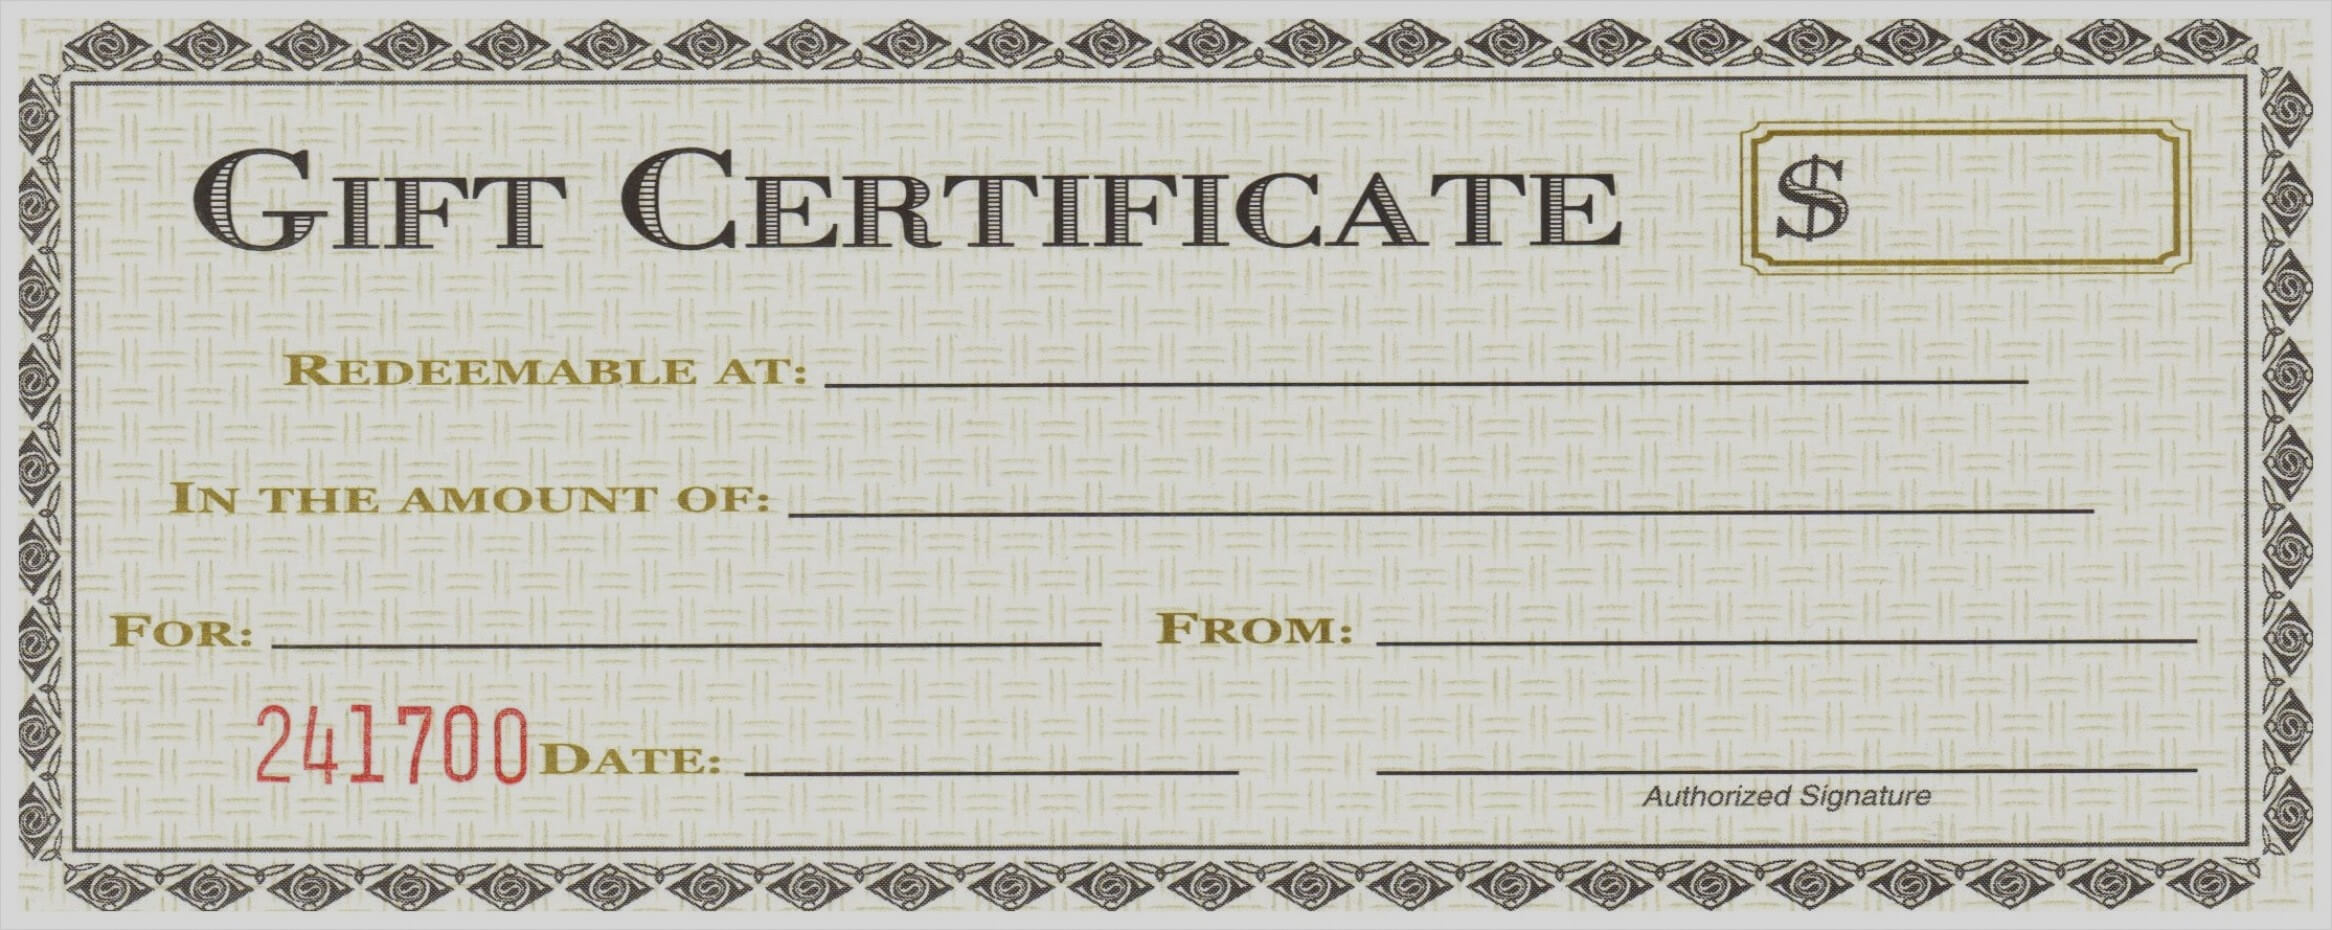 Free Printable Gift Vouchers Template Certificate Templates Throughout Pages Certificate Templates